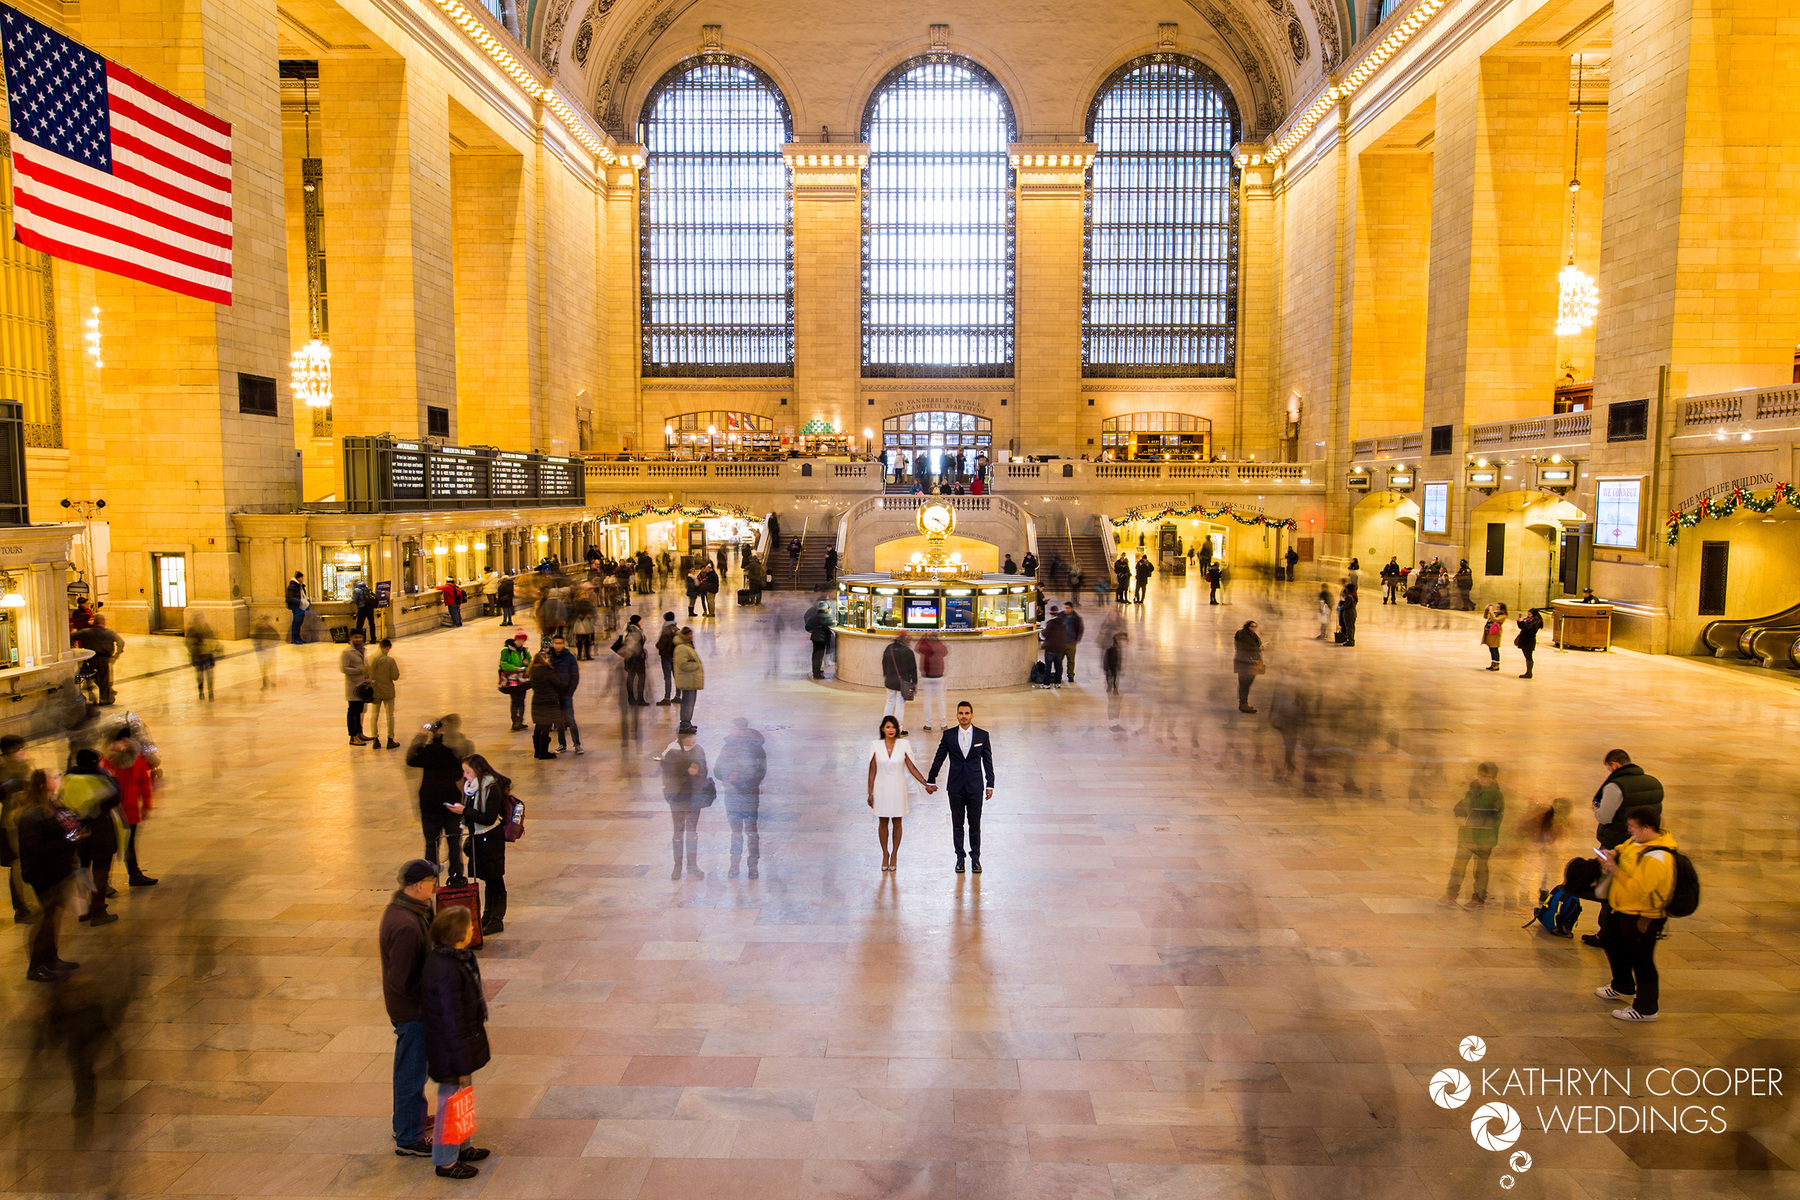 Grand Central wedding photos couple standing motion blur Kathryn Cooper Weddings